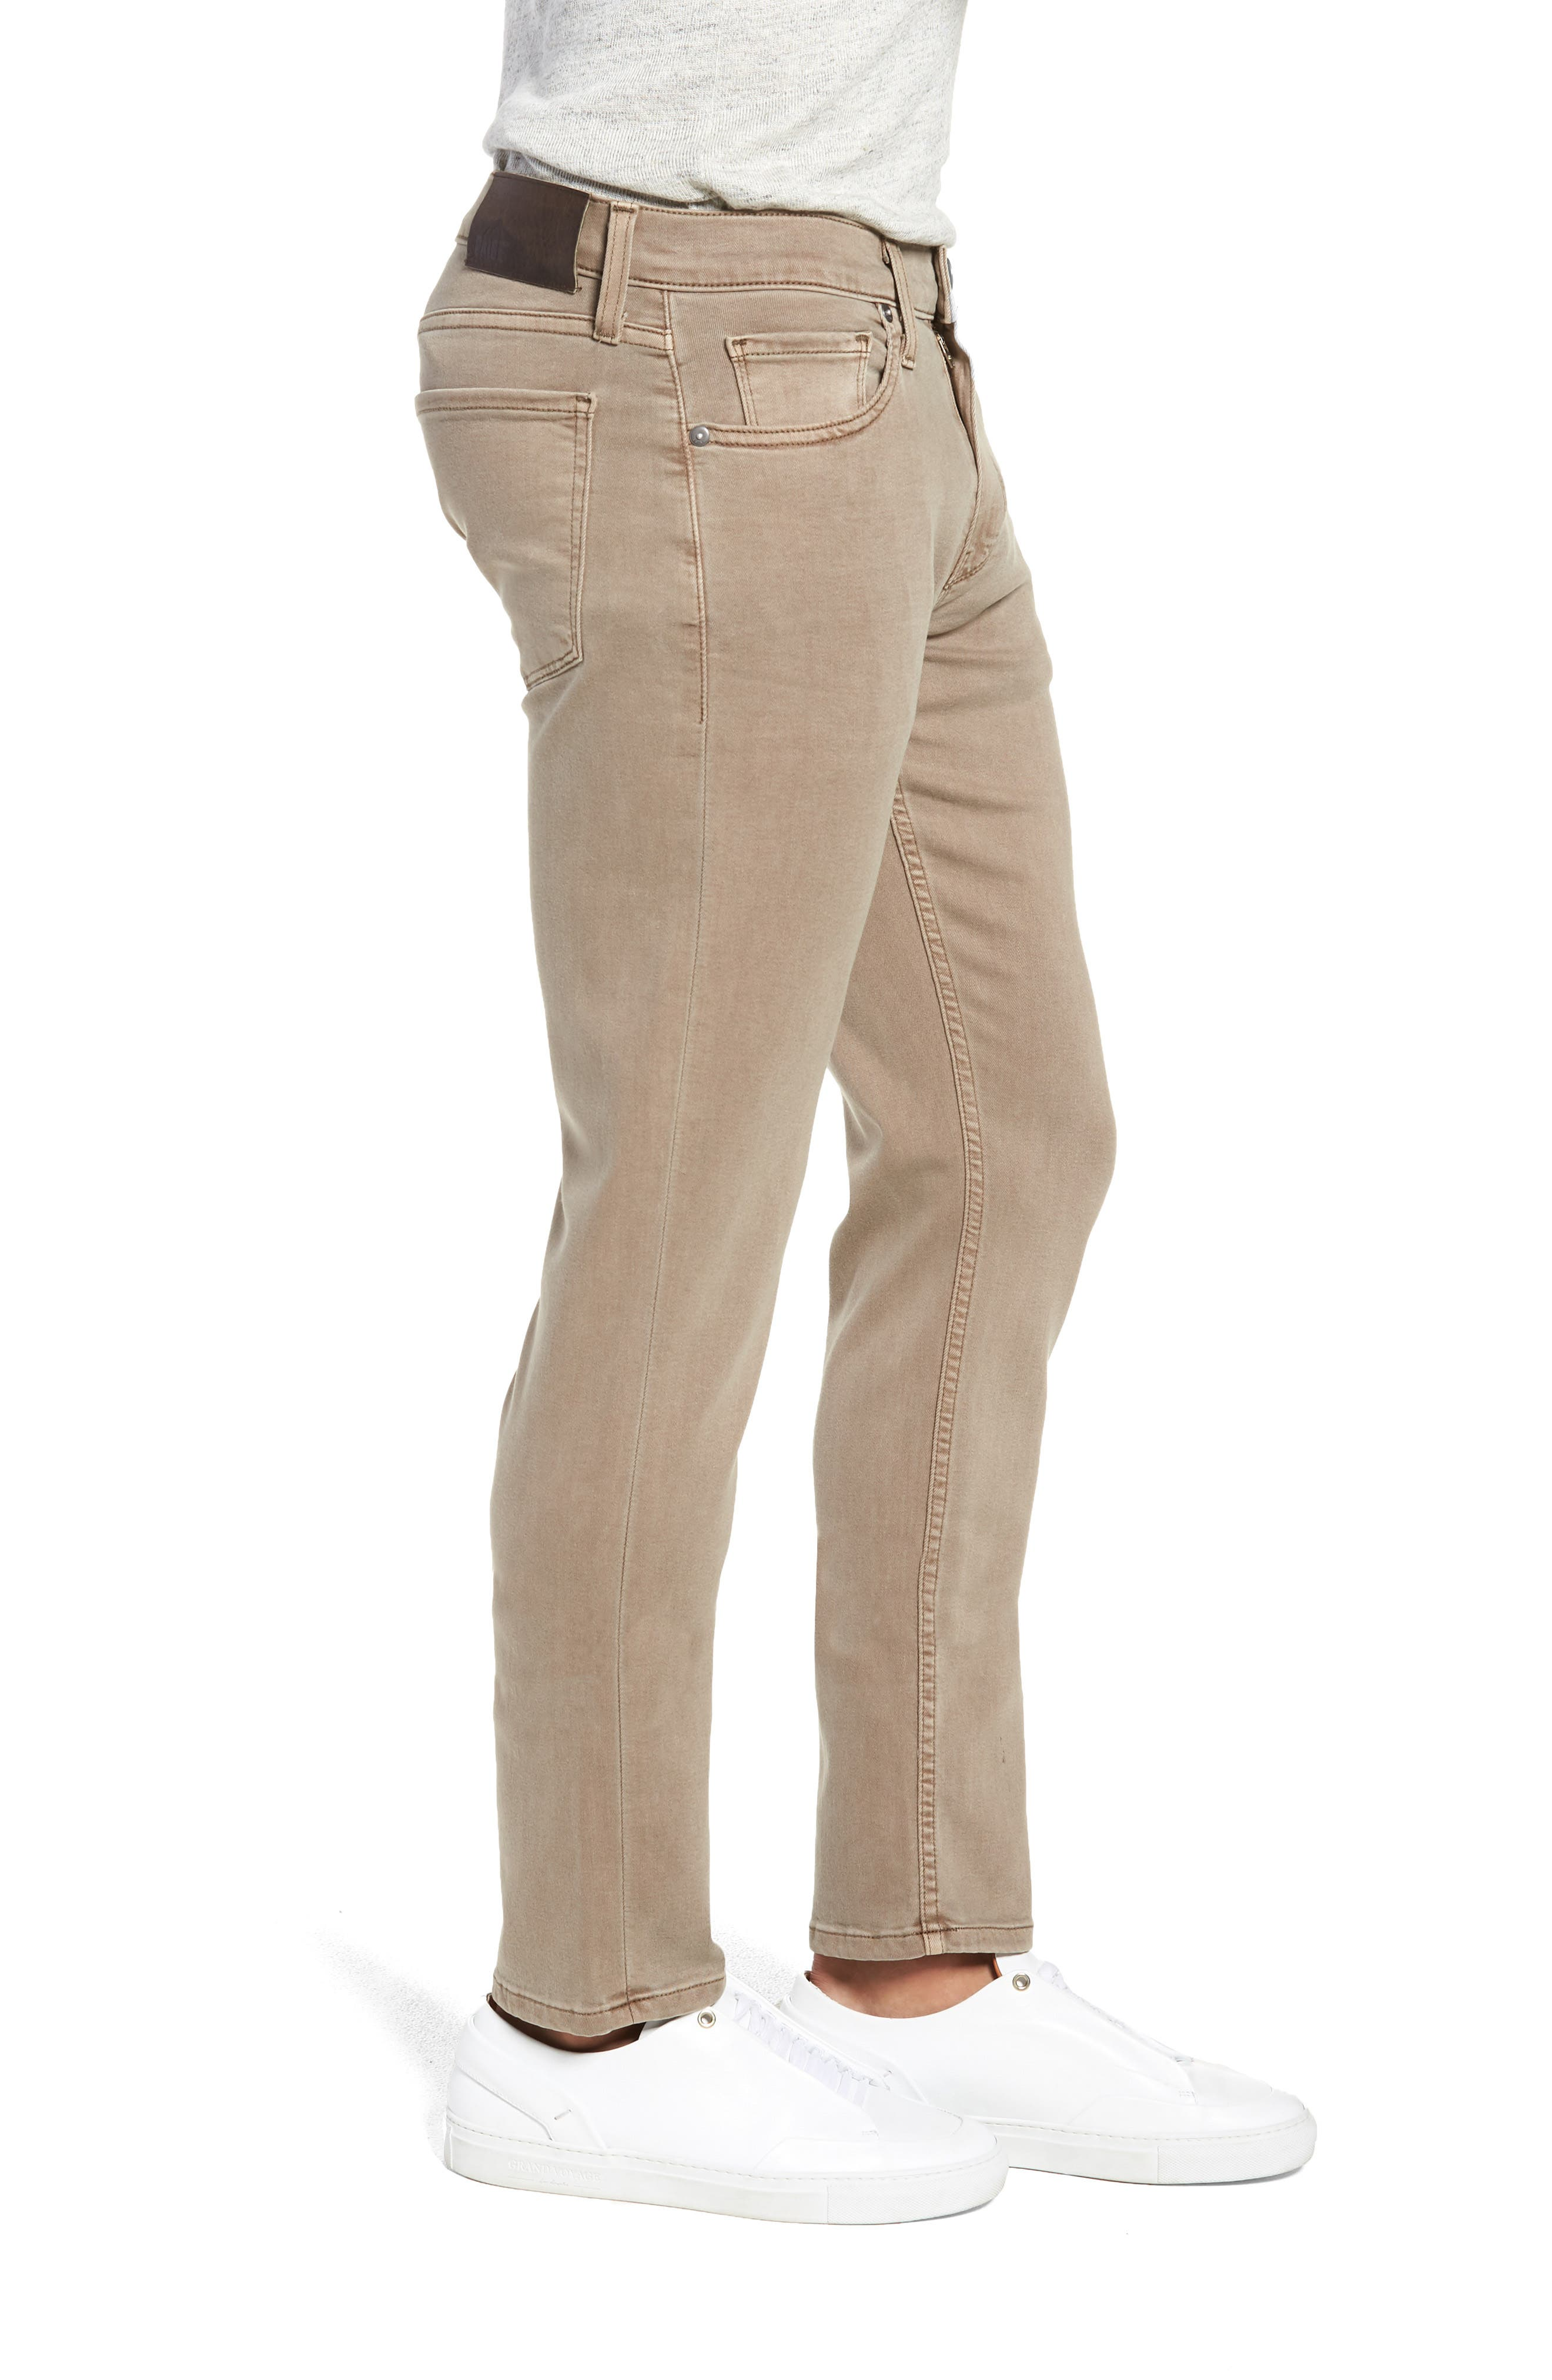 Transcend - Lennox Slim Fit Twill Pants,                             Alternate thumbnail 3, color,                             VINTAGE MUSHROOM